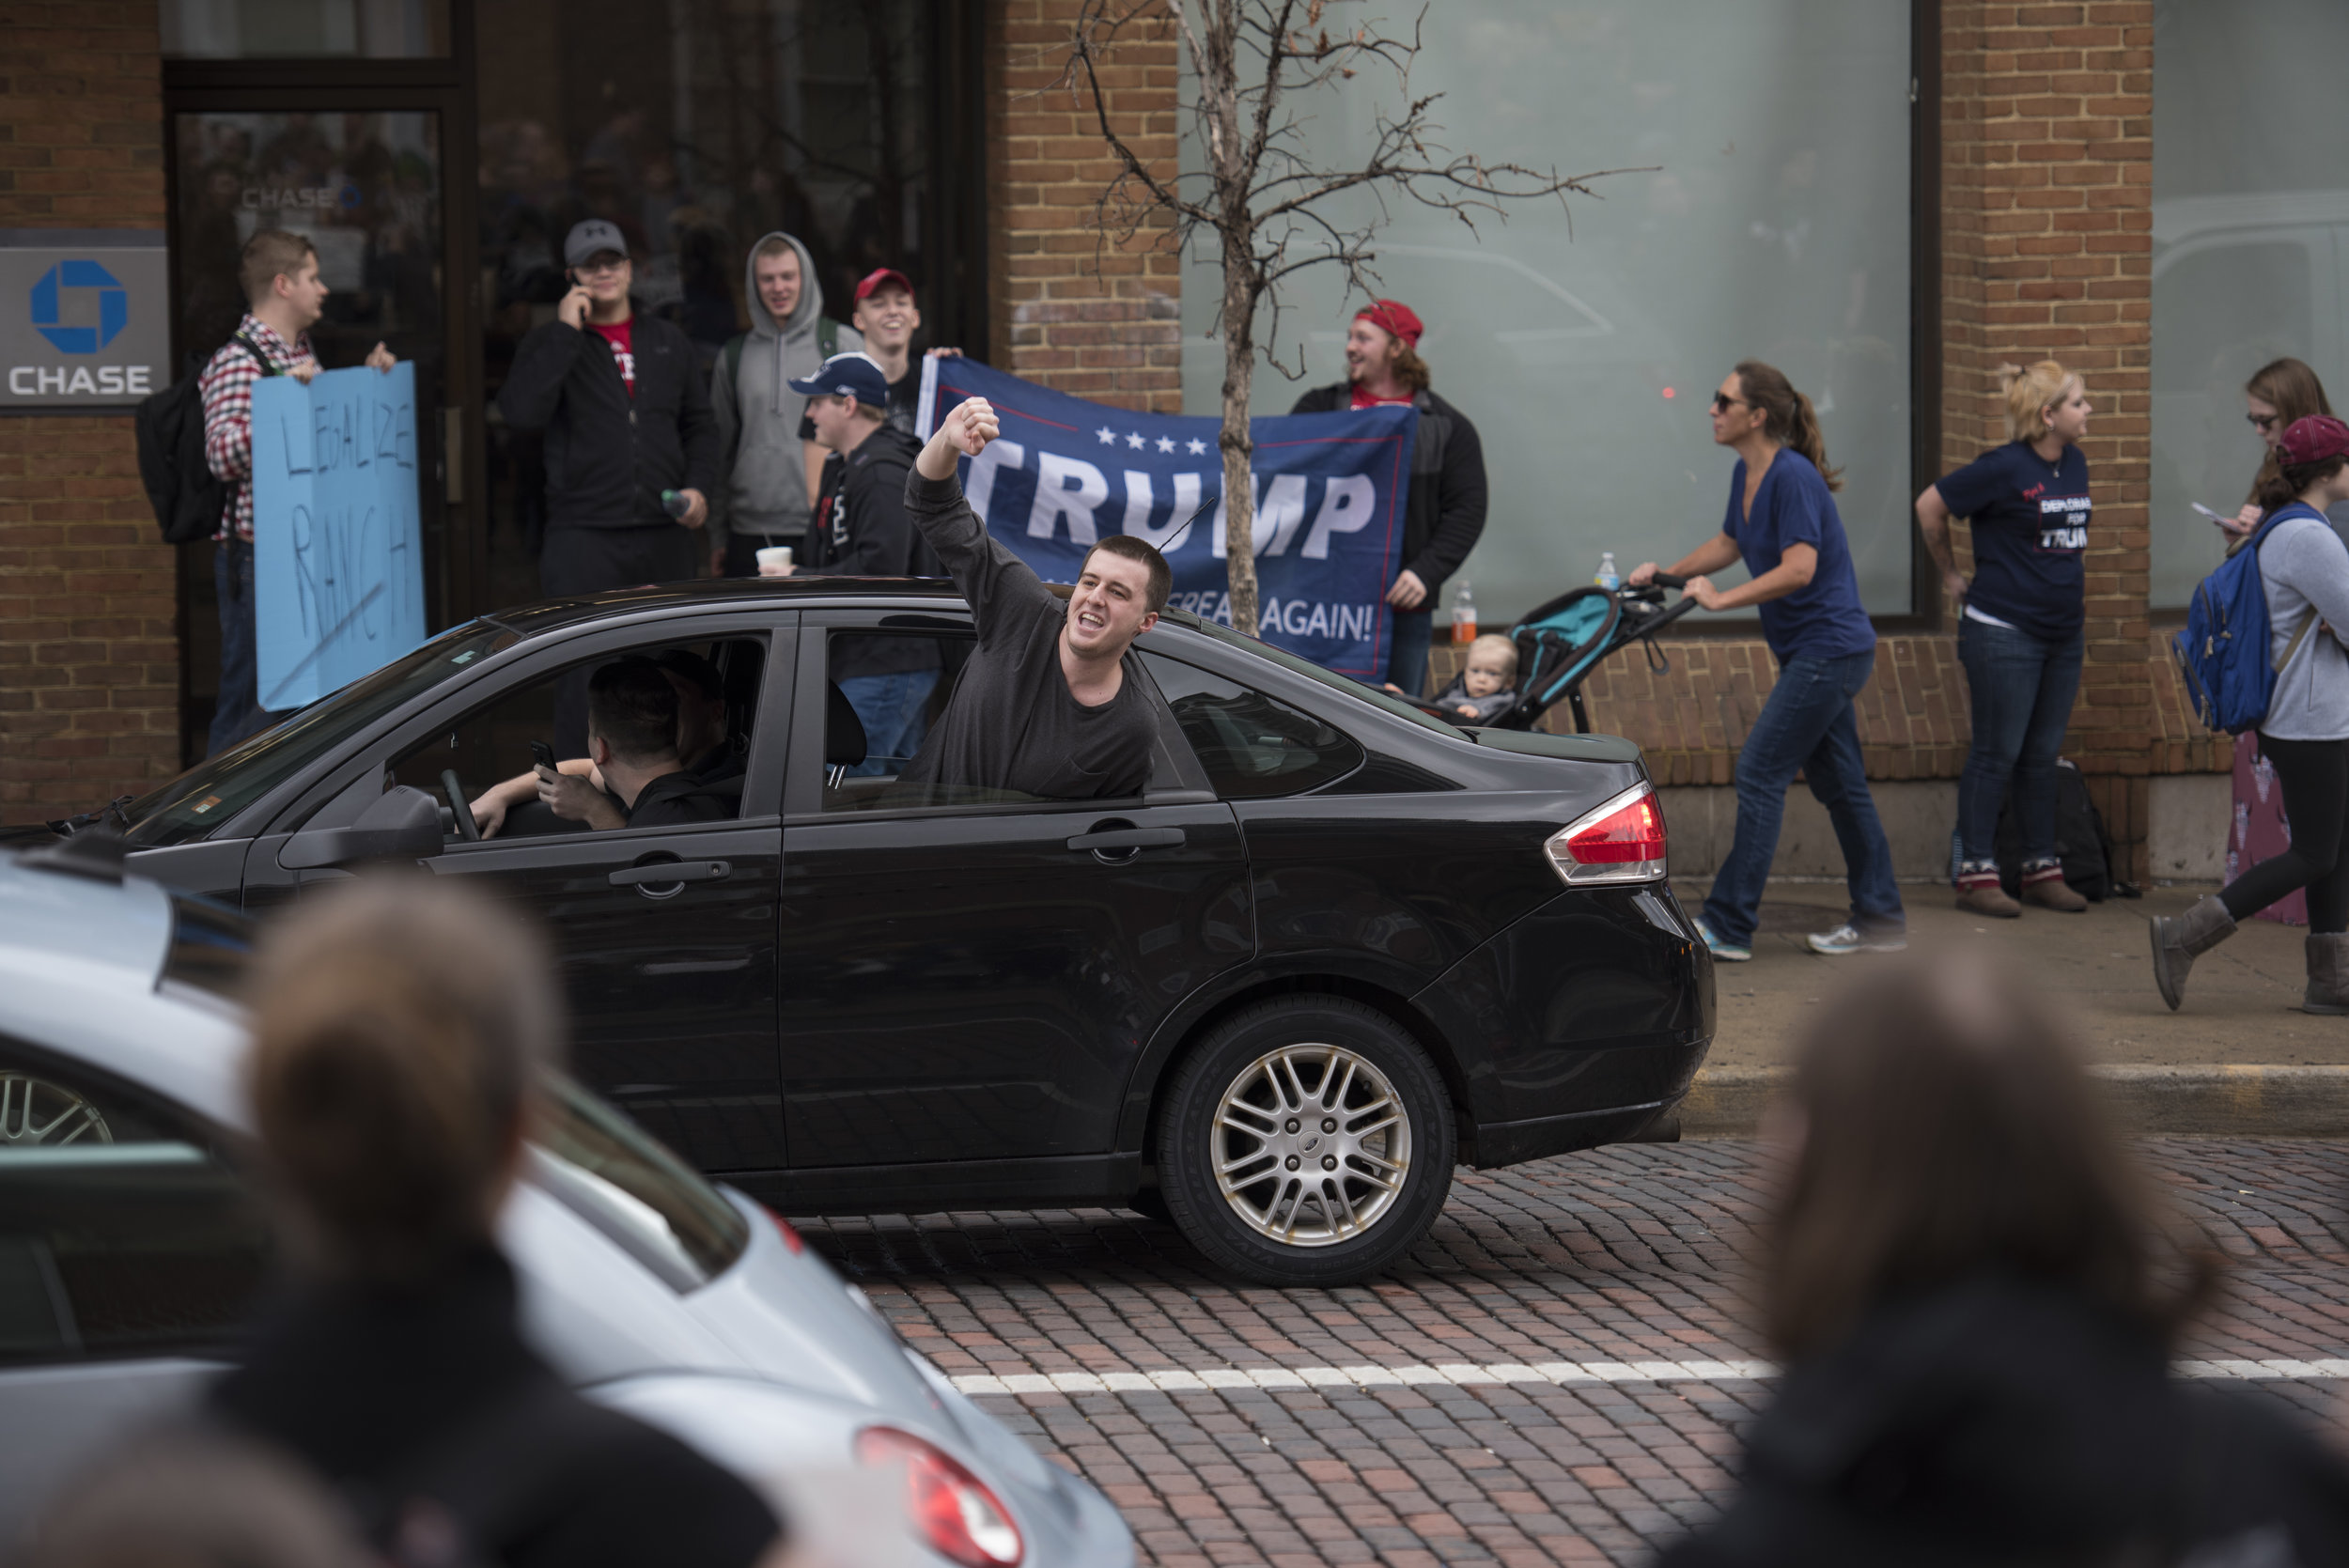 A Trump supporter yells out of a car window at a crowd of Trump protestors on Court Street on Jan. 20, 2017 in Athens, Ohio. The crowd had assembled in front of the courthouse after a walkout at Ohio University in protest of Donald Trump's inauguration. Shortly after, a smaller crowd of Trump supporters gathered across the street.